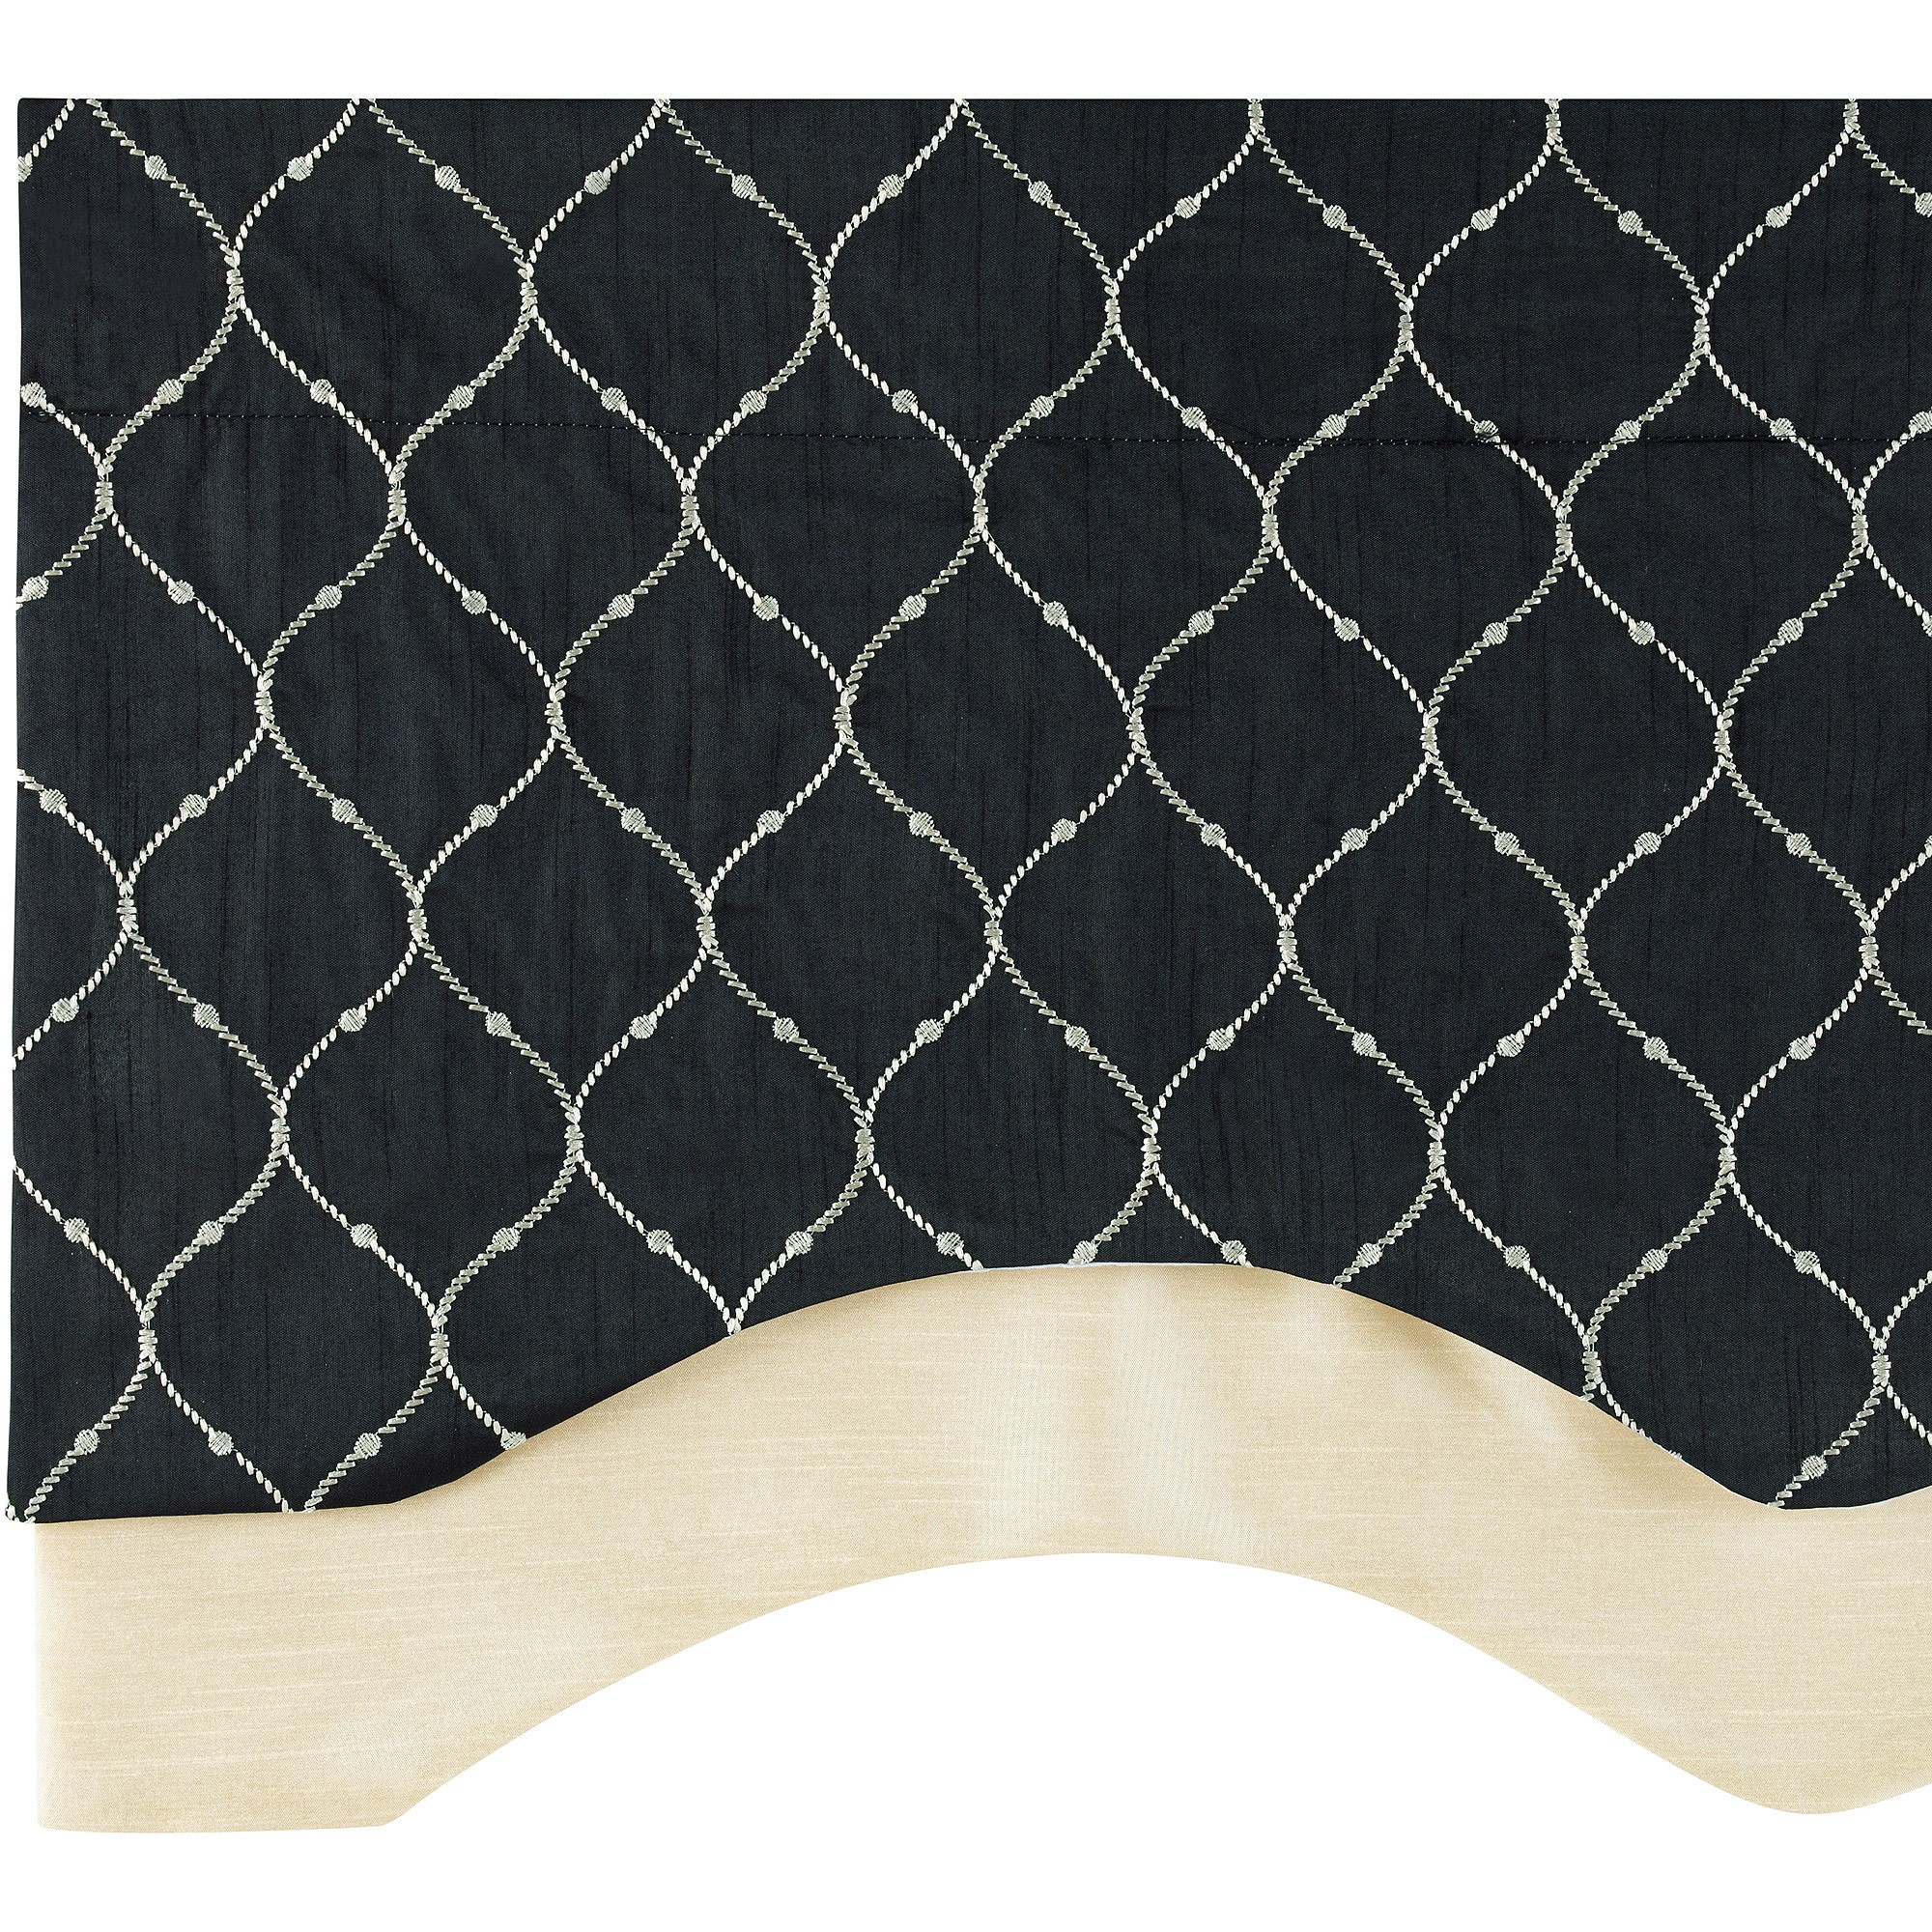 Bleecker Embroidered Layered Valance with Lining